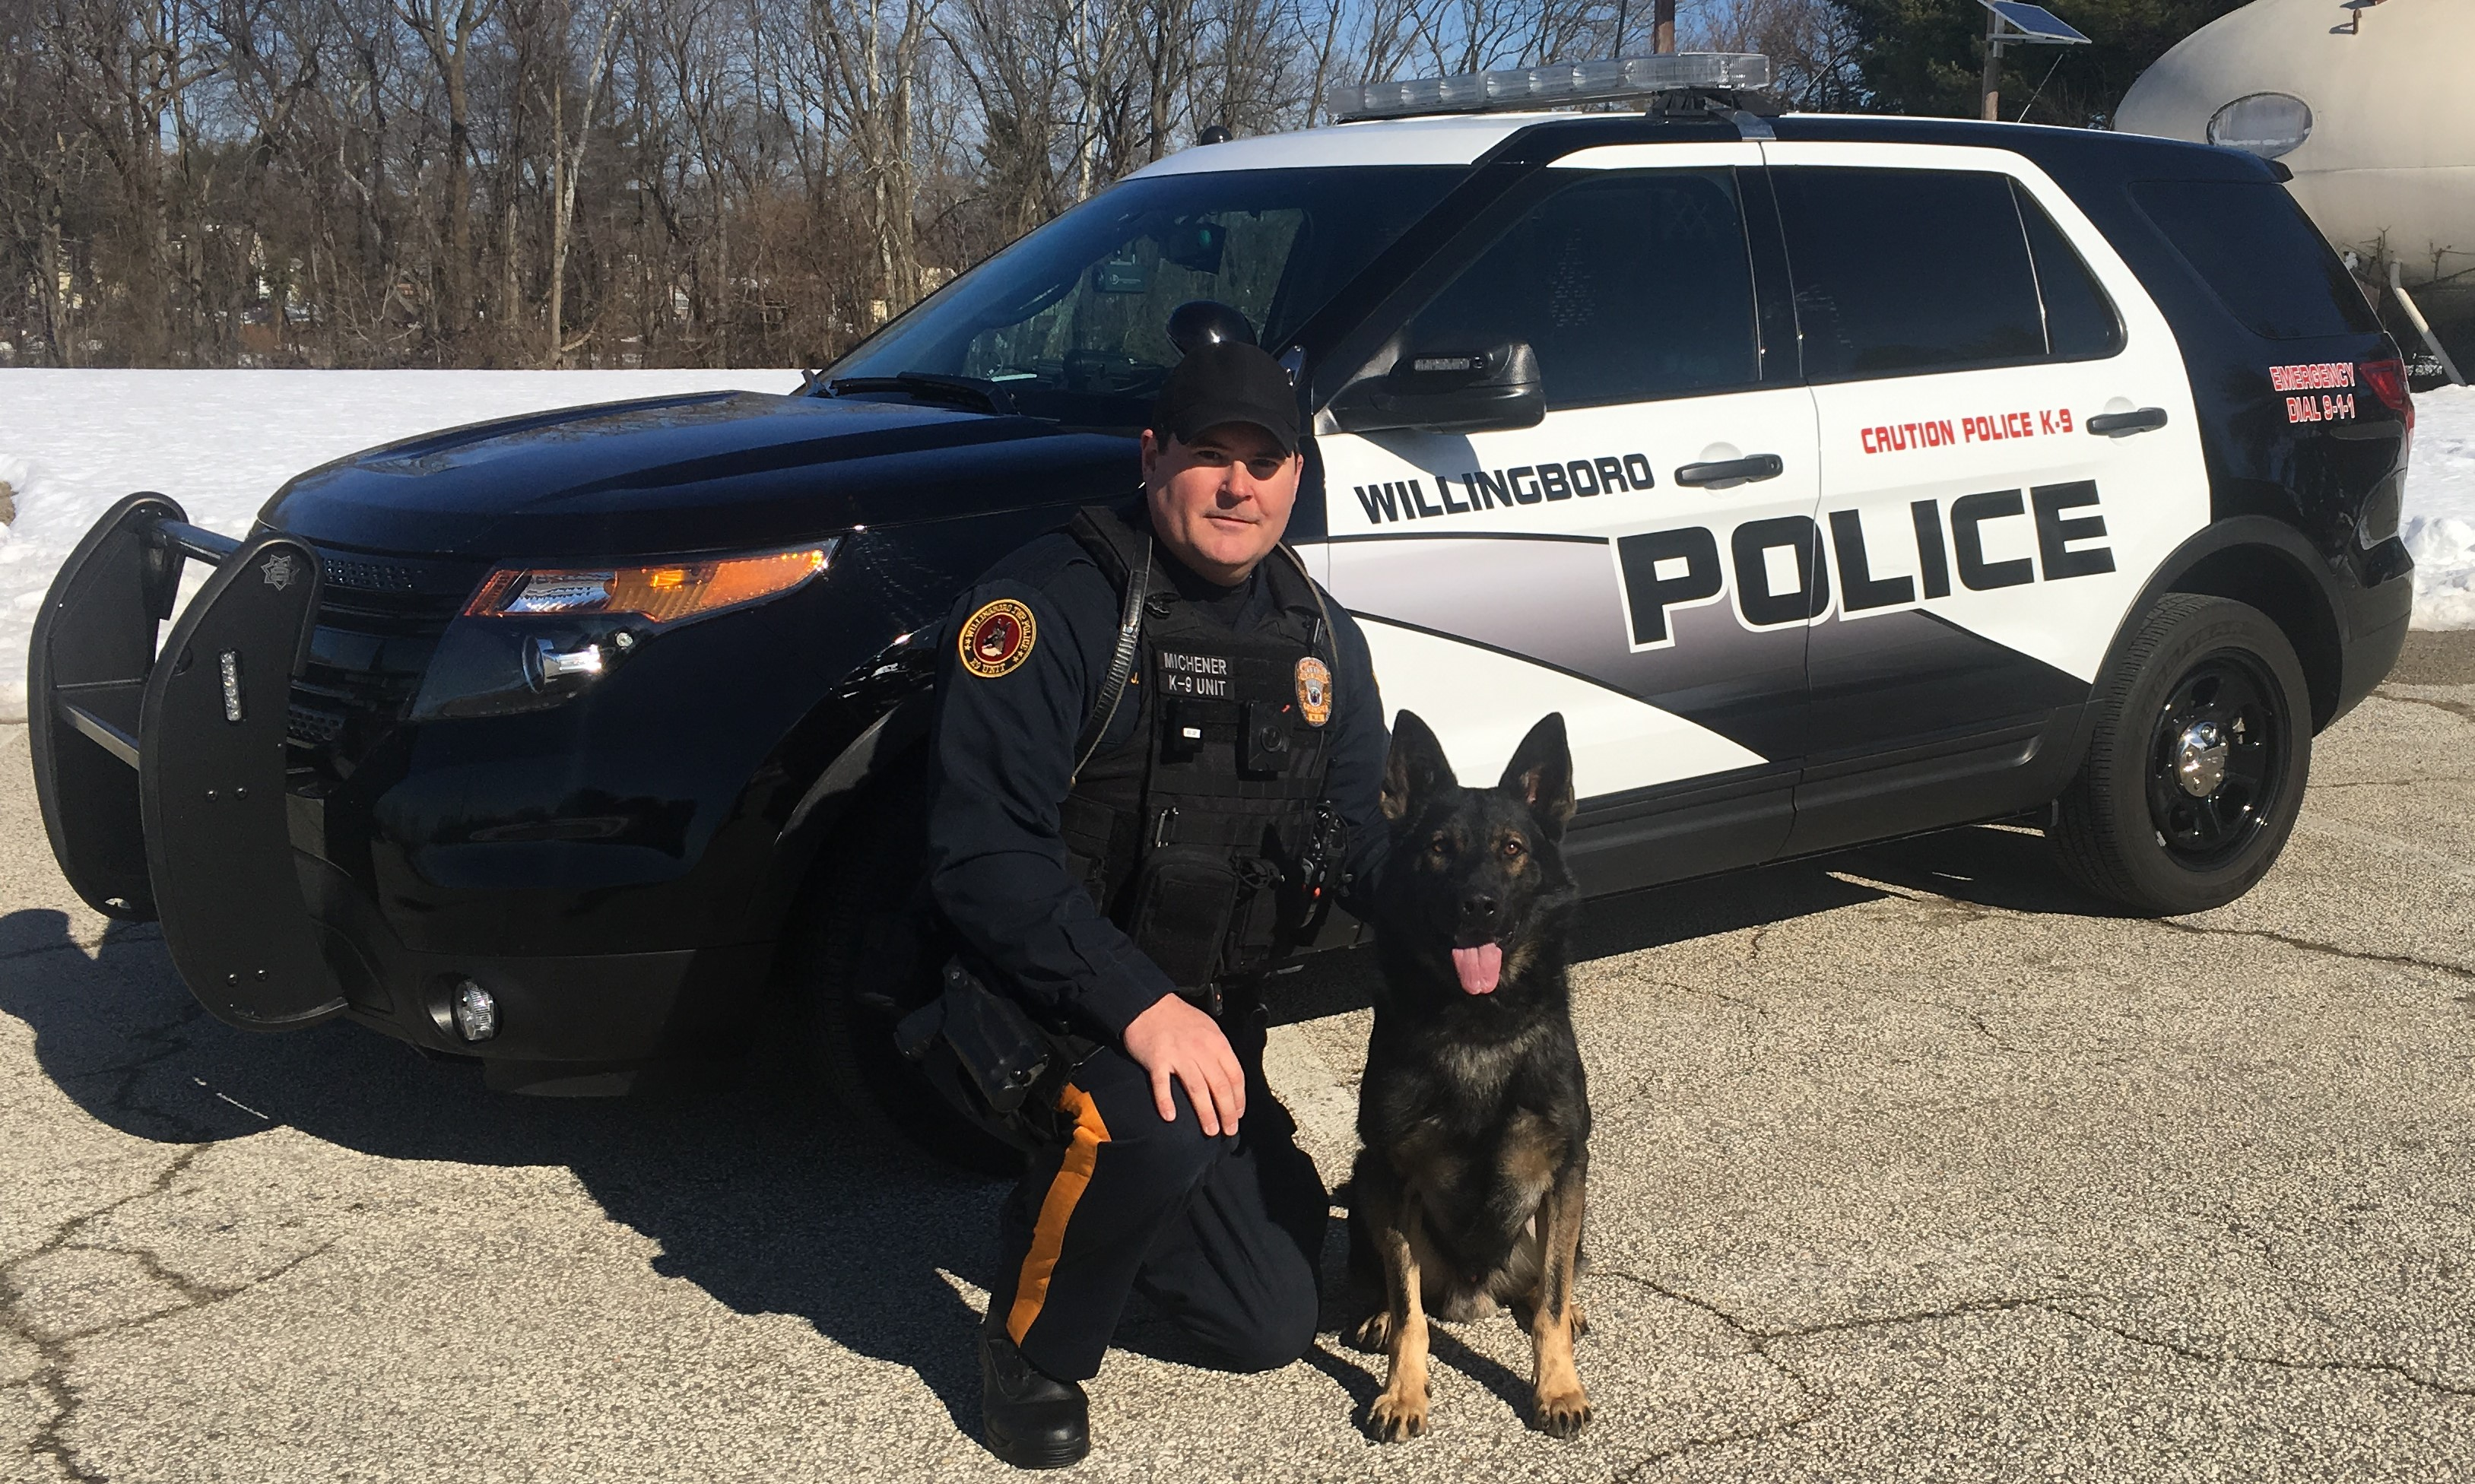 K-9 Ricky & Officer Michener